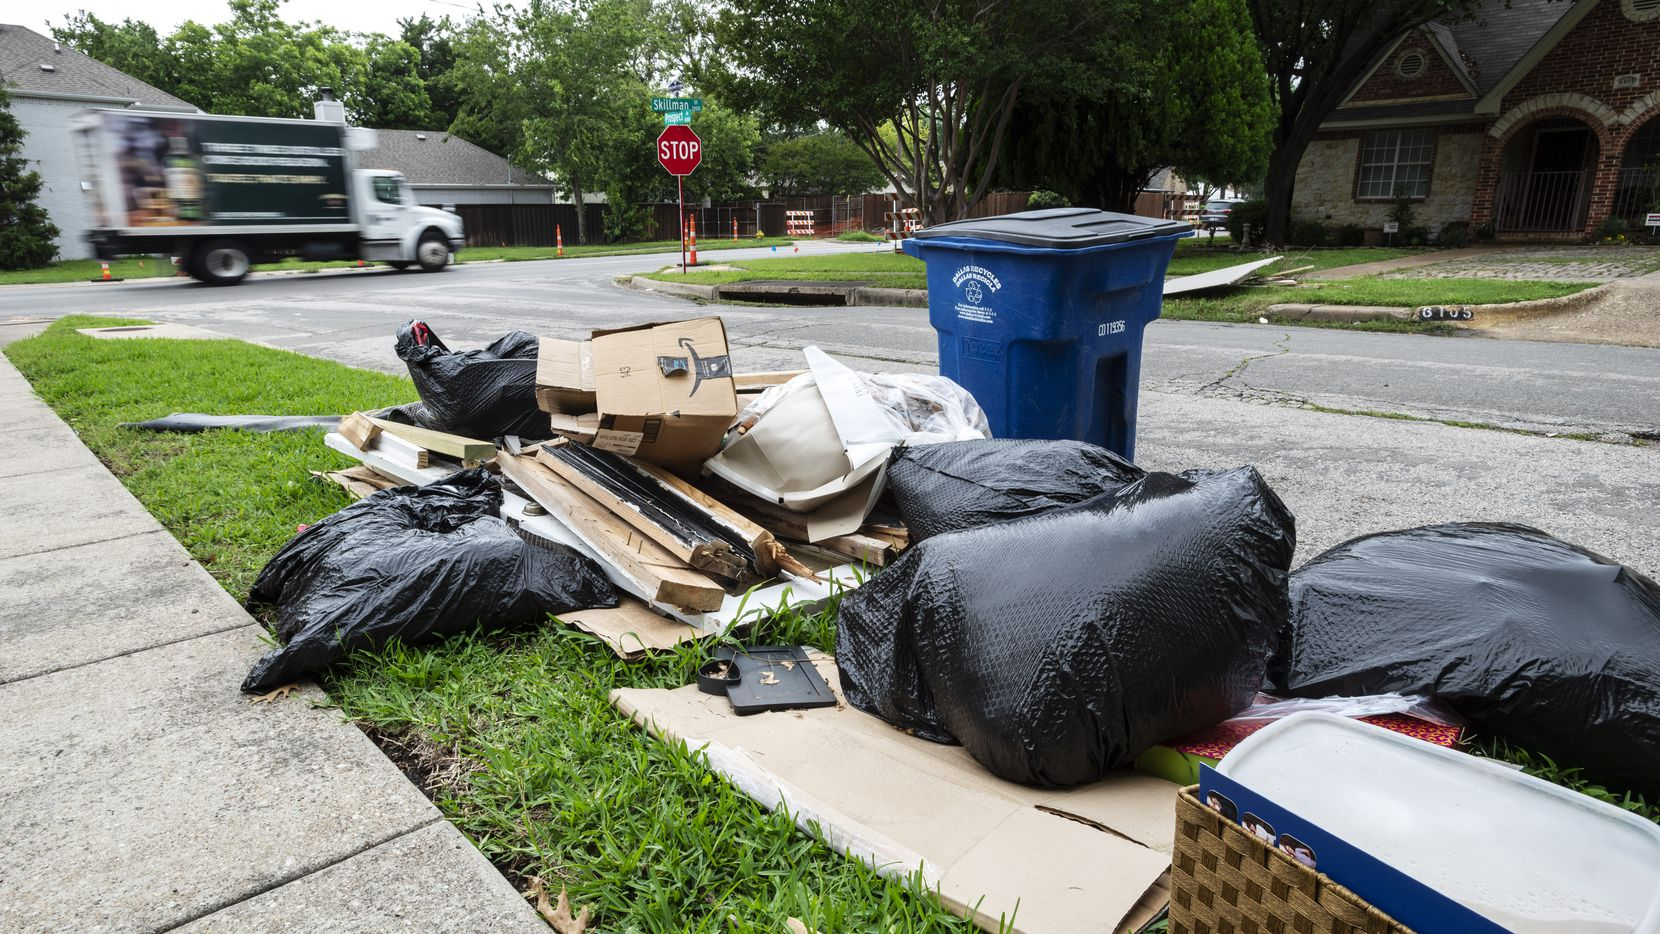 Bulk trash awaits delayed pickup near the intersection of Prospect Avenue and Skillman Street in Dallas in June 2021. Basic city services are suffering in Dallas.